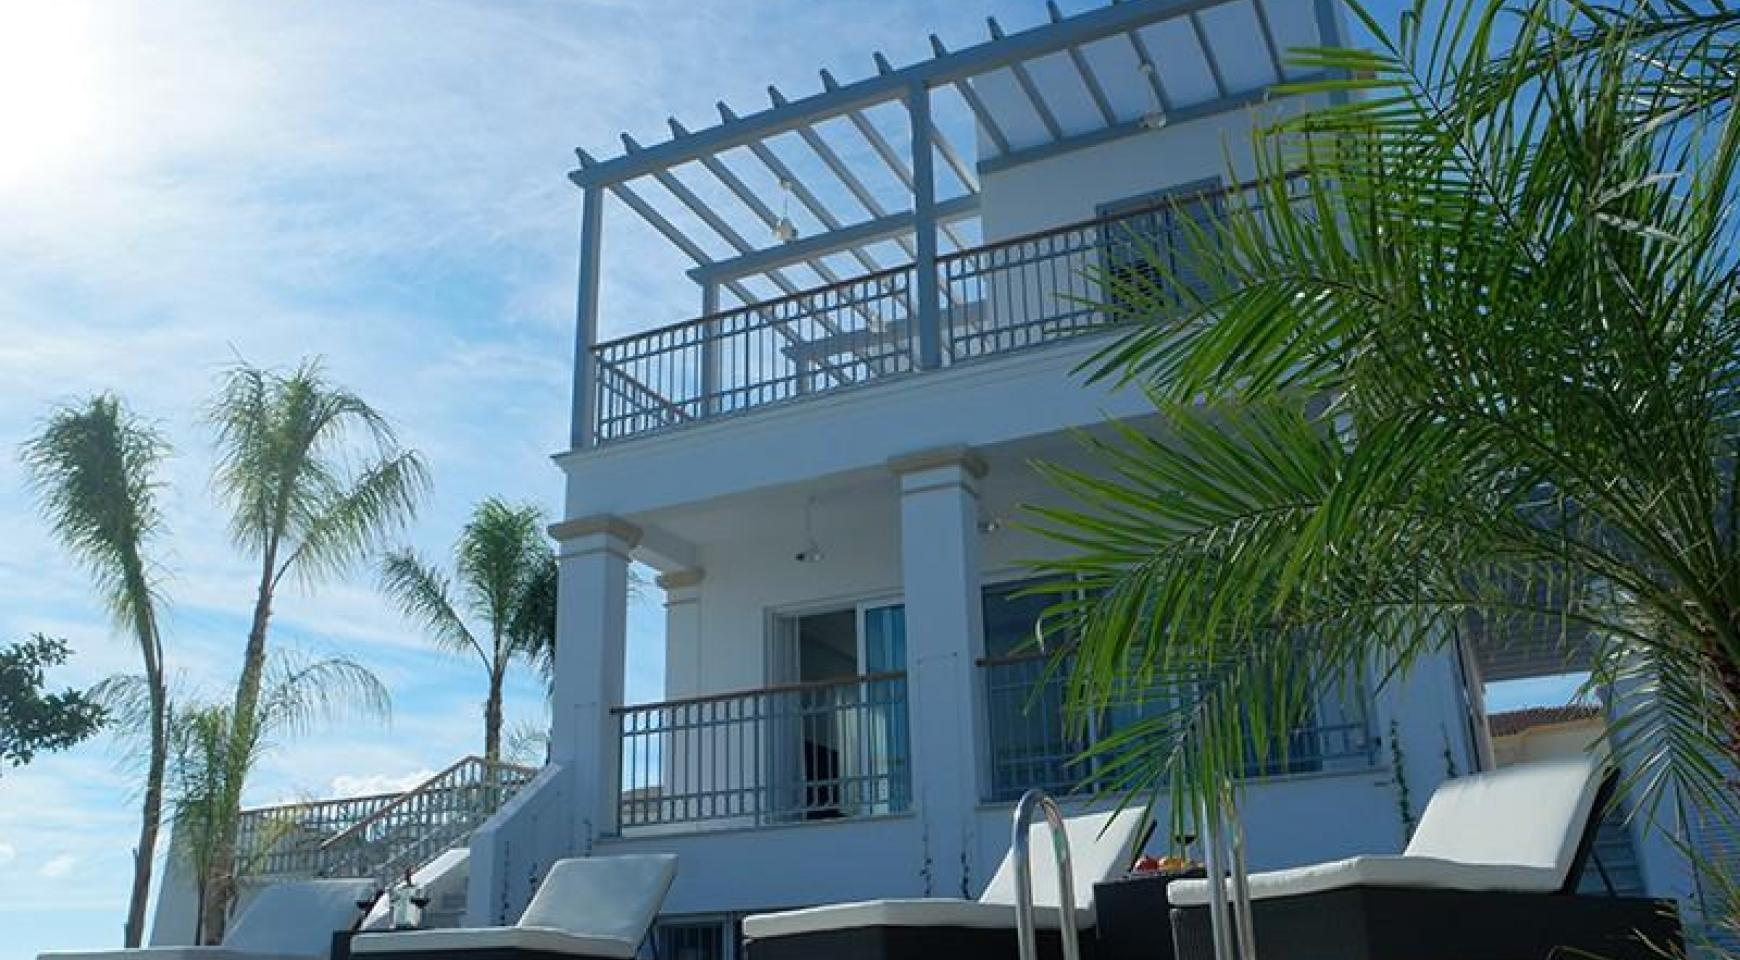 Luxurious 3 Bedroom Villa in an Exclusive Development by the Sea - 5